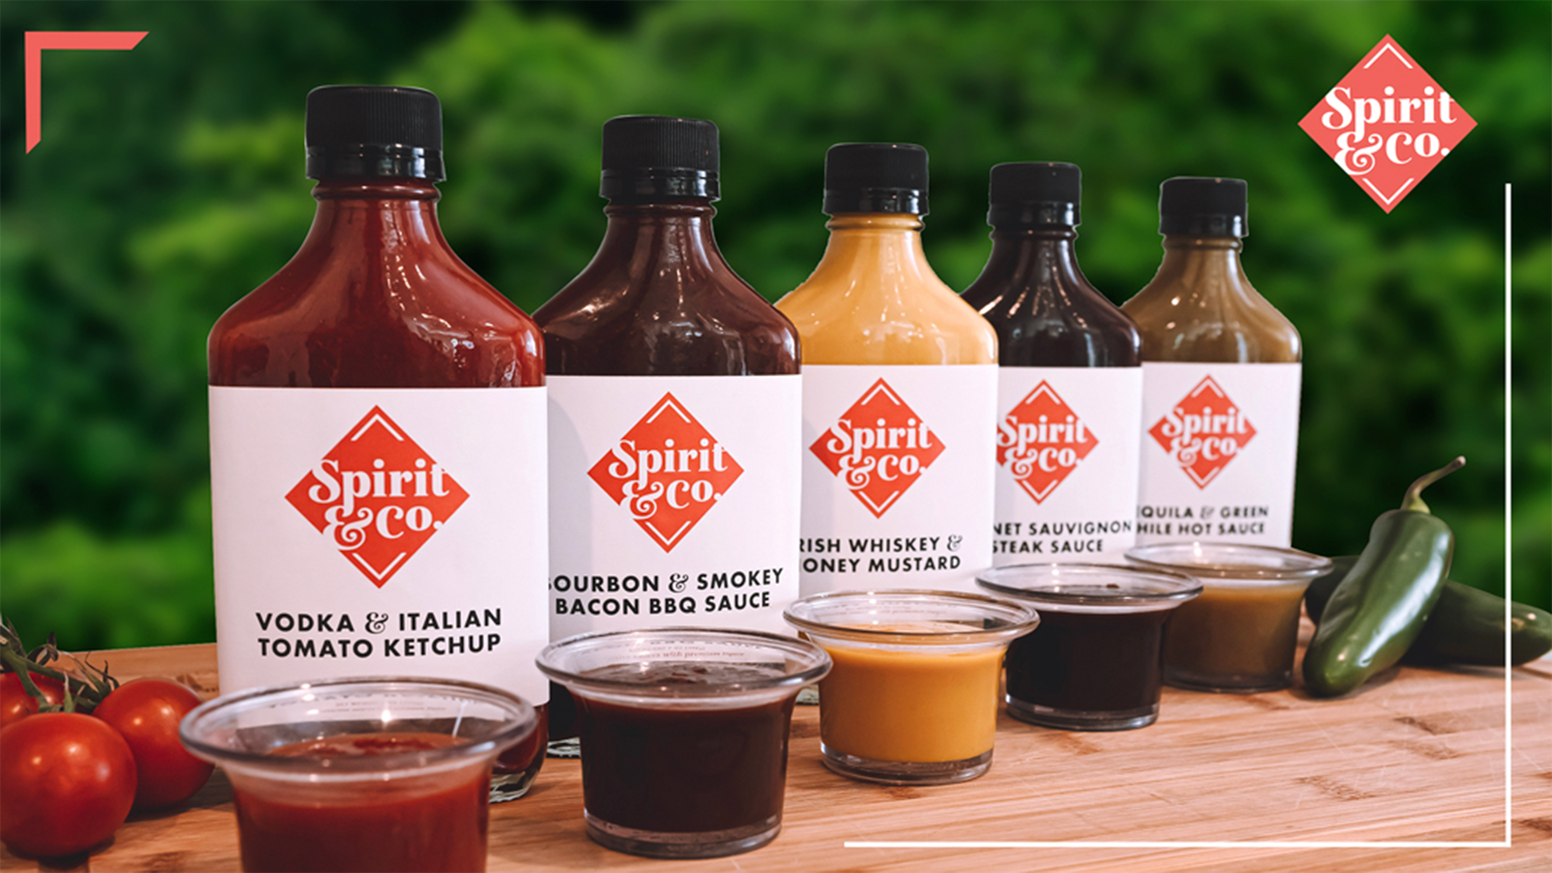 Makers of distinctive sauces with premium liquor. Our condiments are all-natural and hand-crafted using ingredients with provenance.